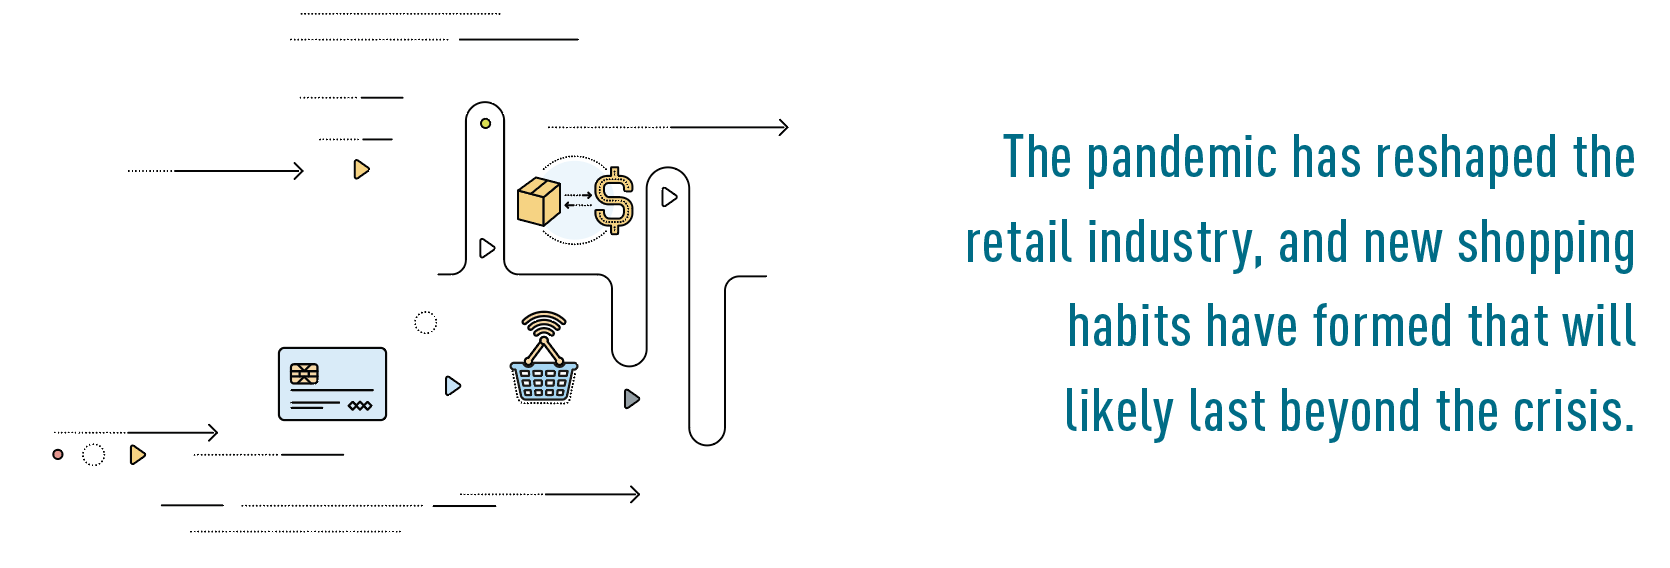 Call Out: The pandemic has reshaped the retail industry, and new shopping habits have formed that will likely last beyond the crisis.